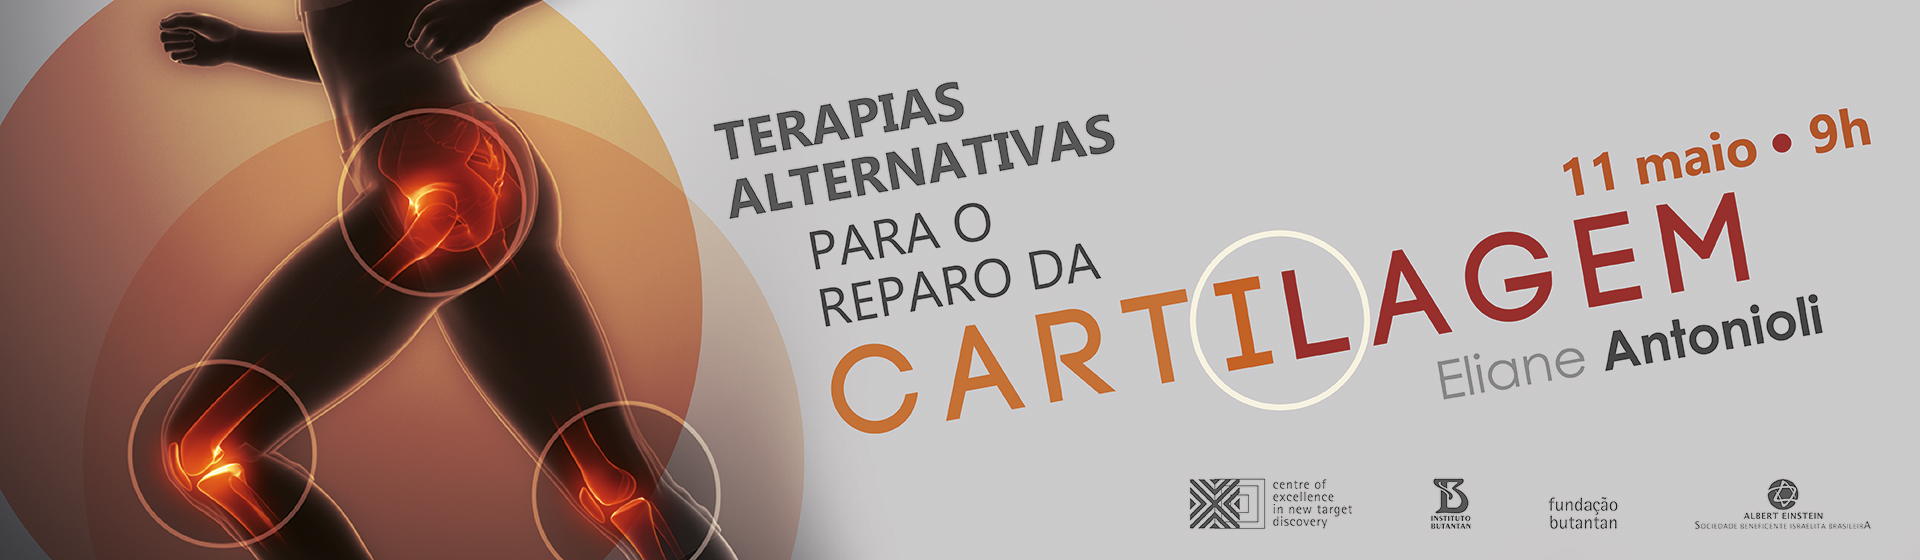 Terapias alternativas para o reparo da cartilagem